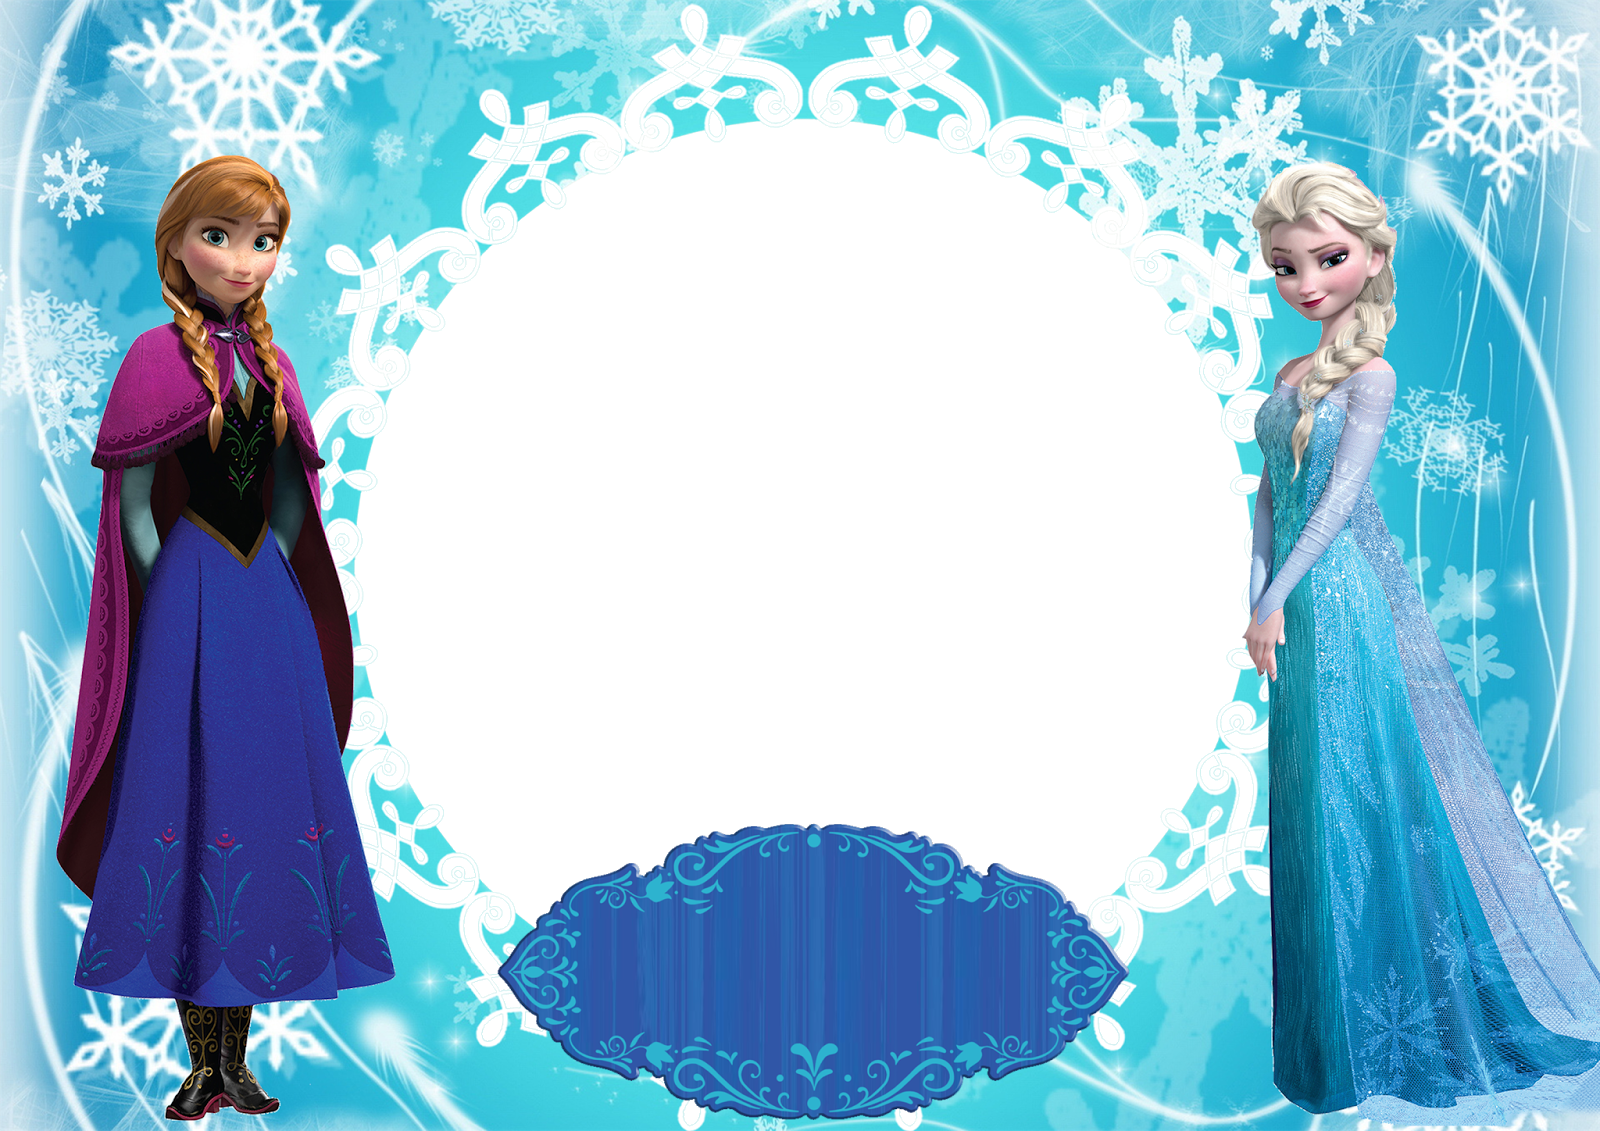 disney frozen picture frames image collections craft decoration photo frame design reviews - Disney Frozen Picture Frames